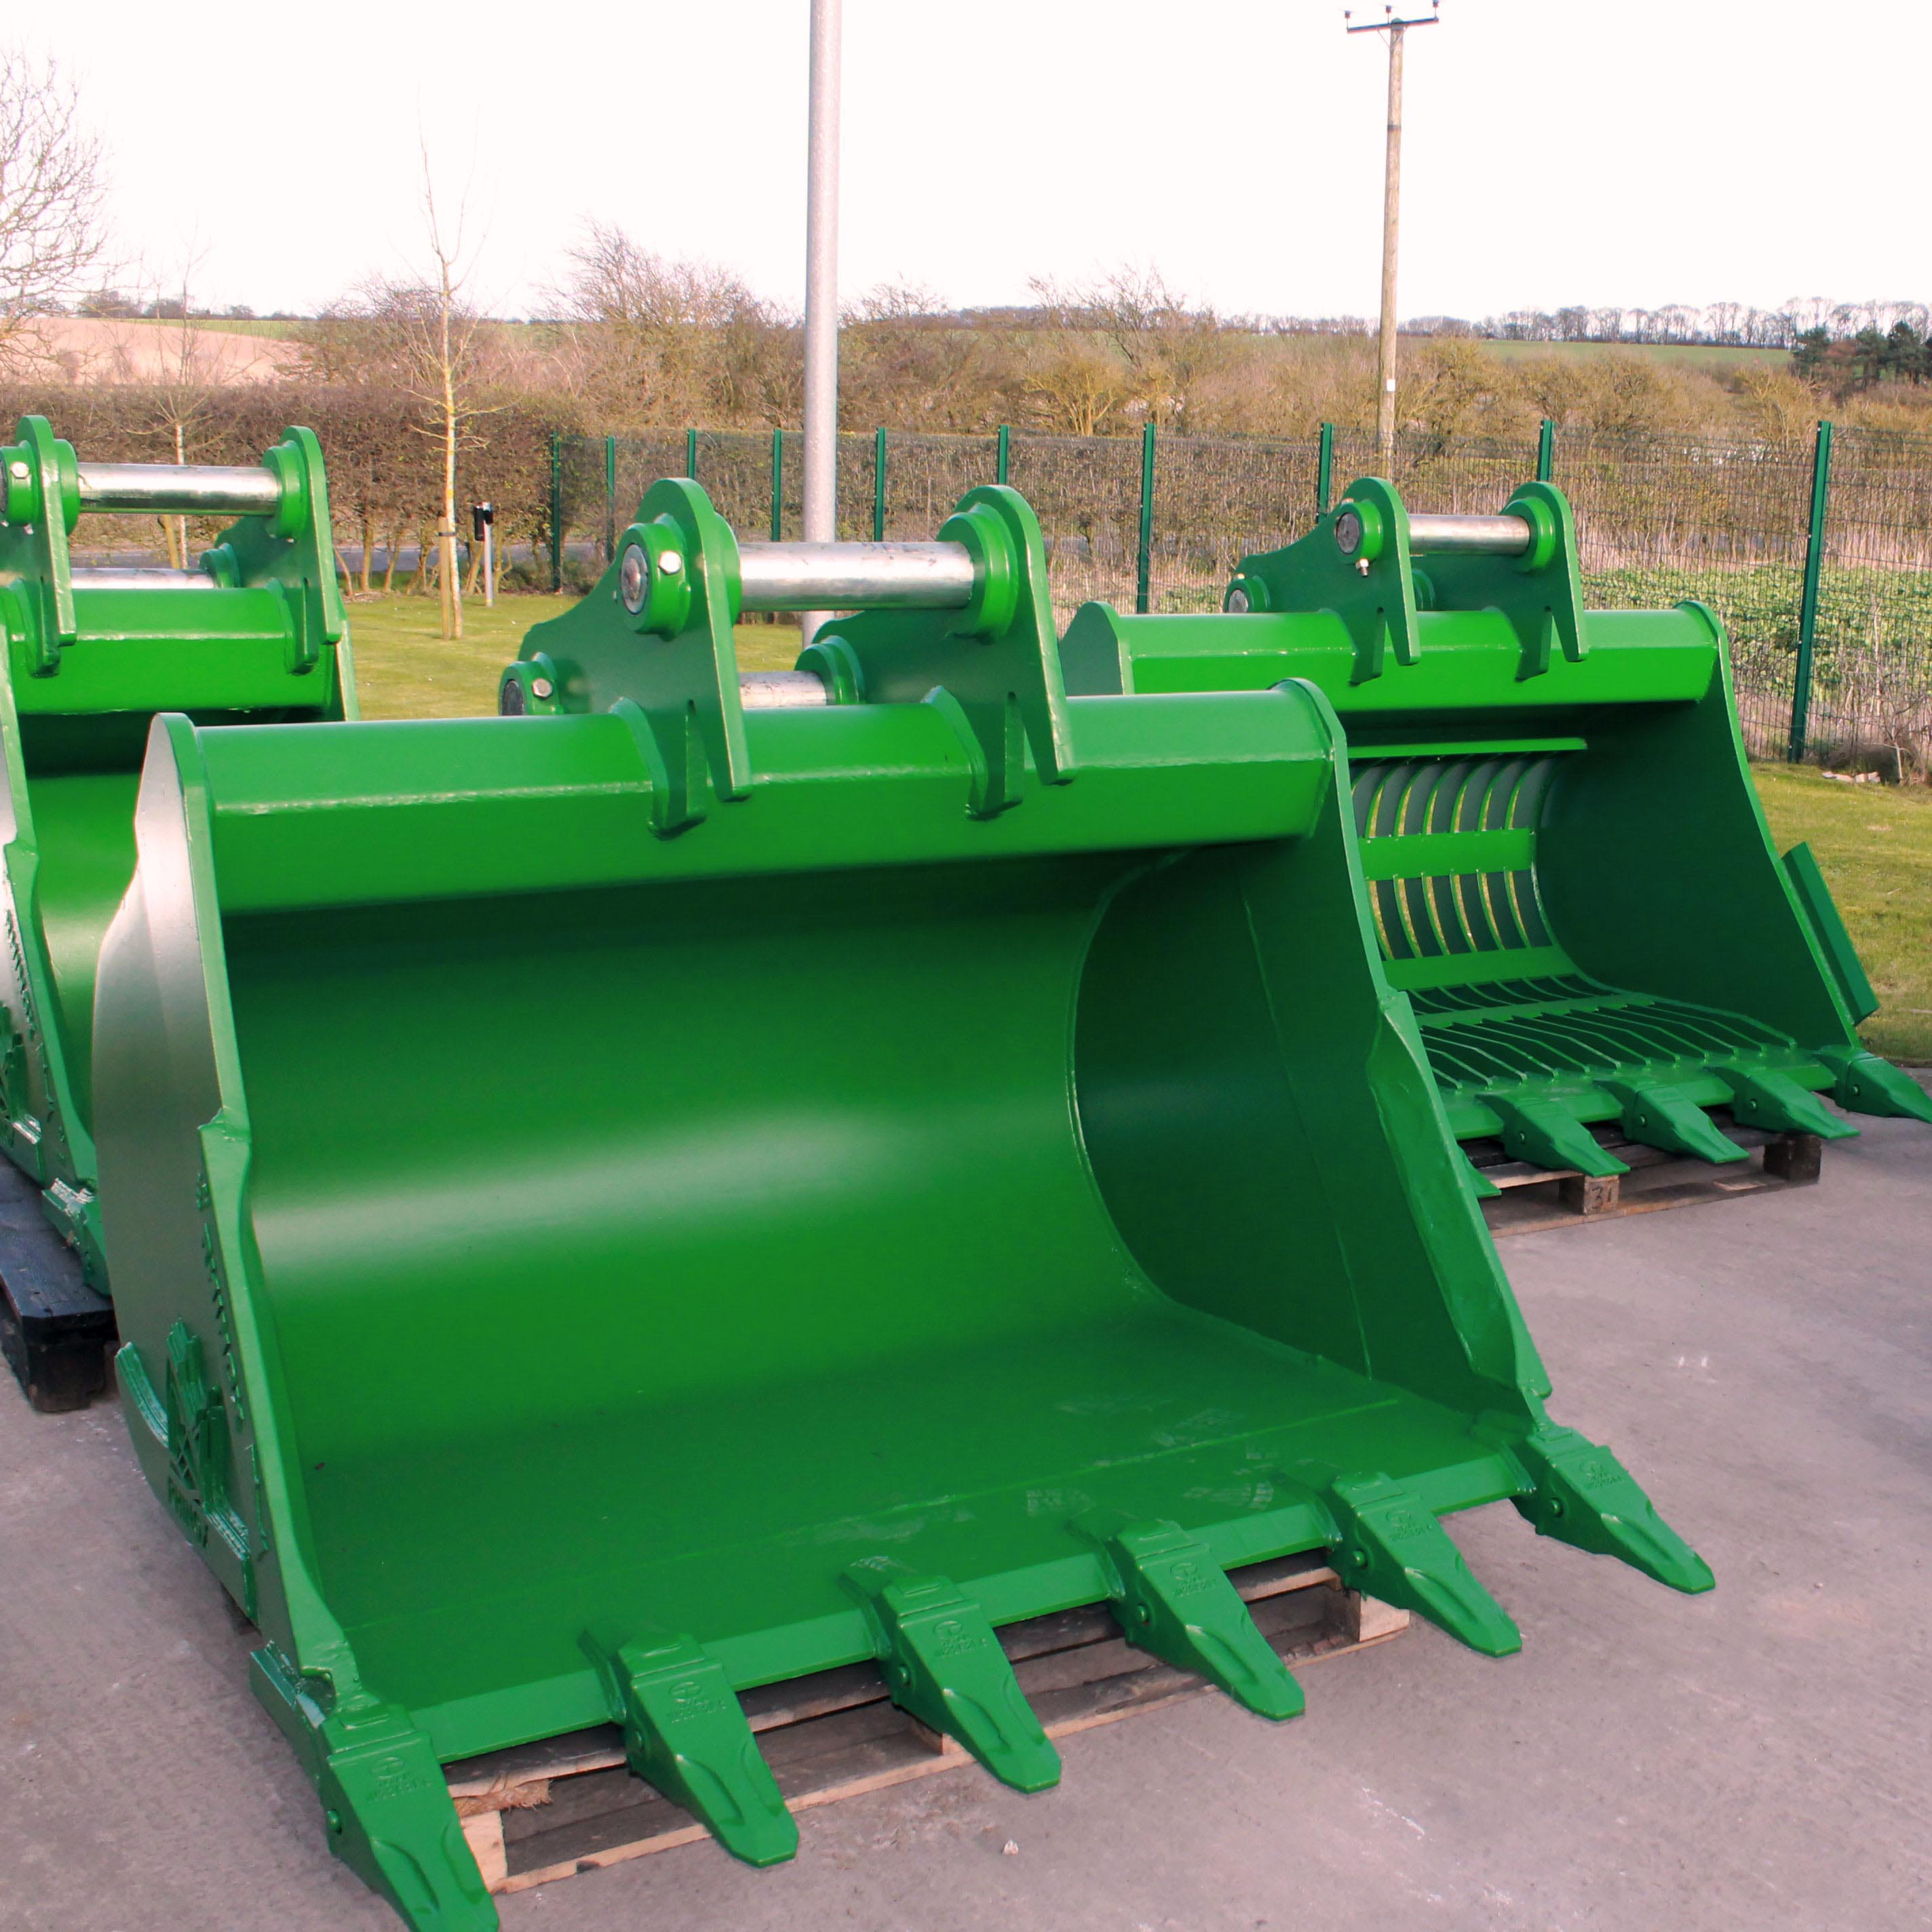 Excavator Buckets custom painted green